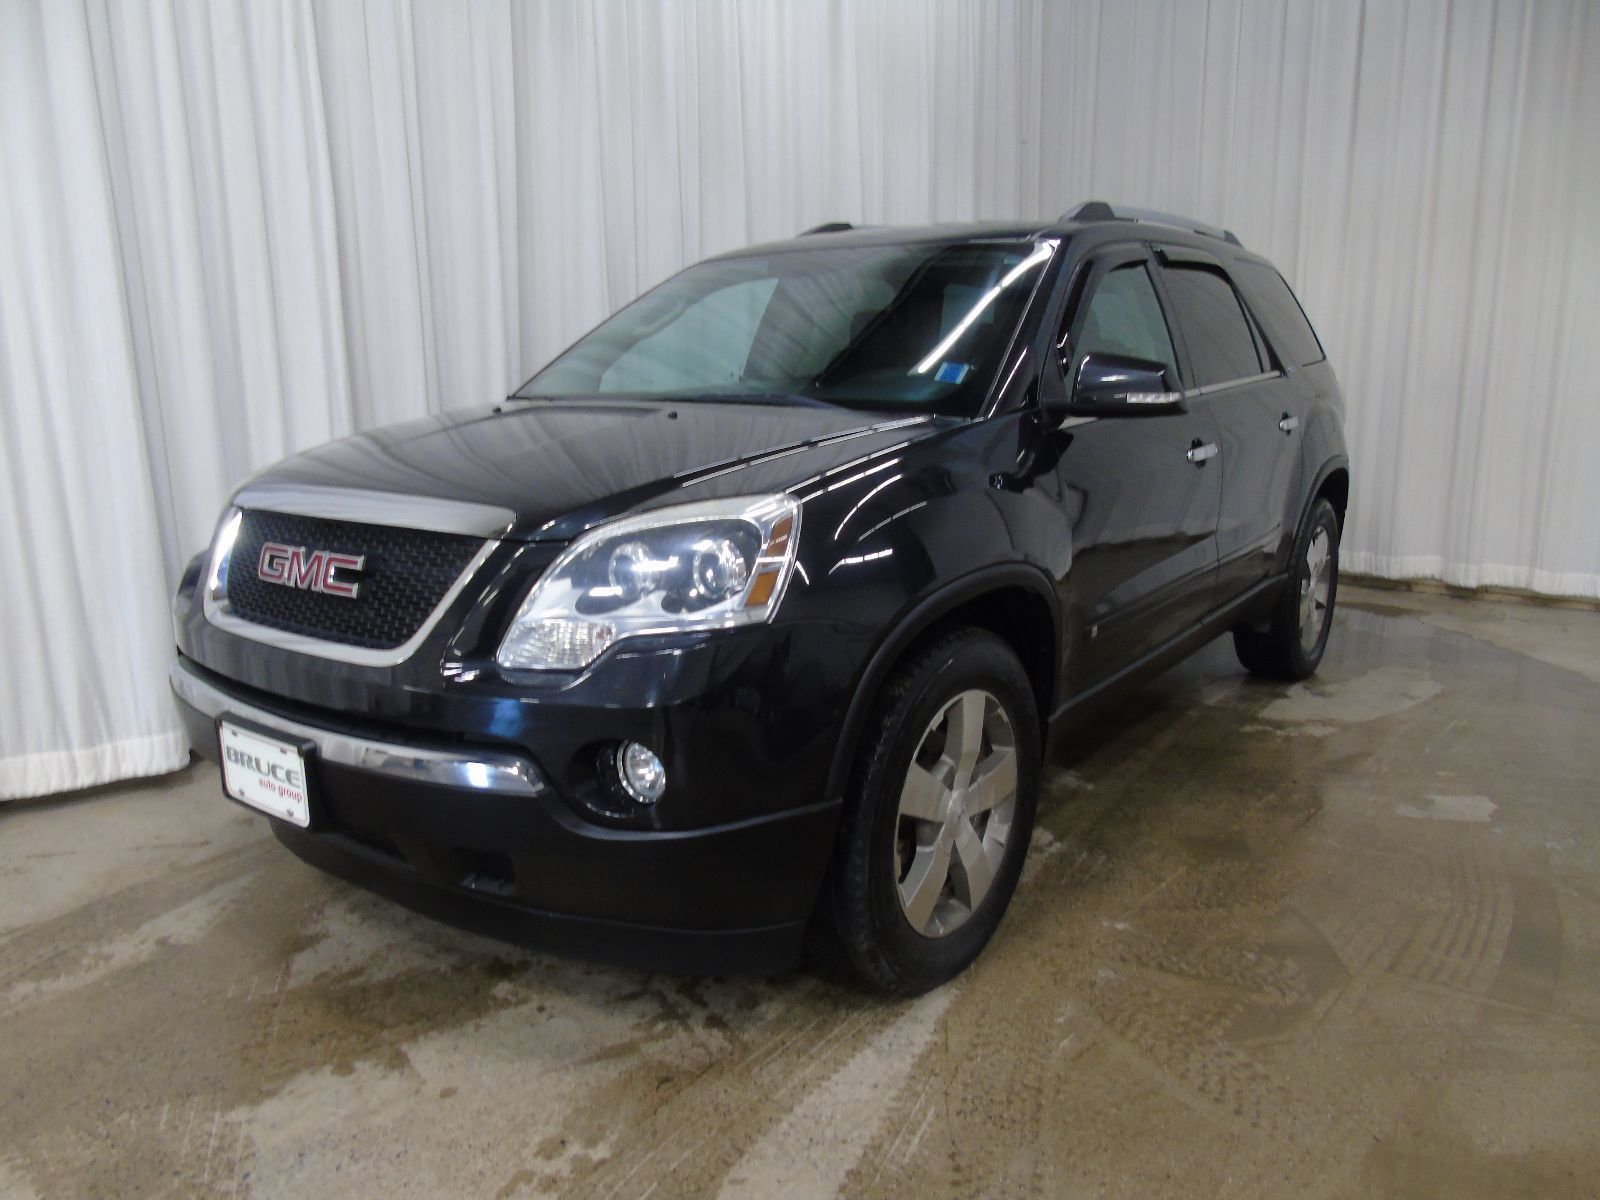 2010 gmc acadia slt 3 6l 6 cyl automatic awd for sale pre owned bruce chevrolet buick gmc. Black Bedroom Furniture Sets. Home Design Ideas